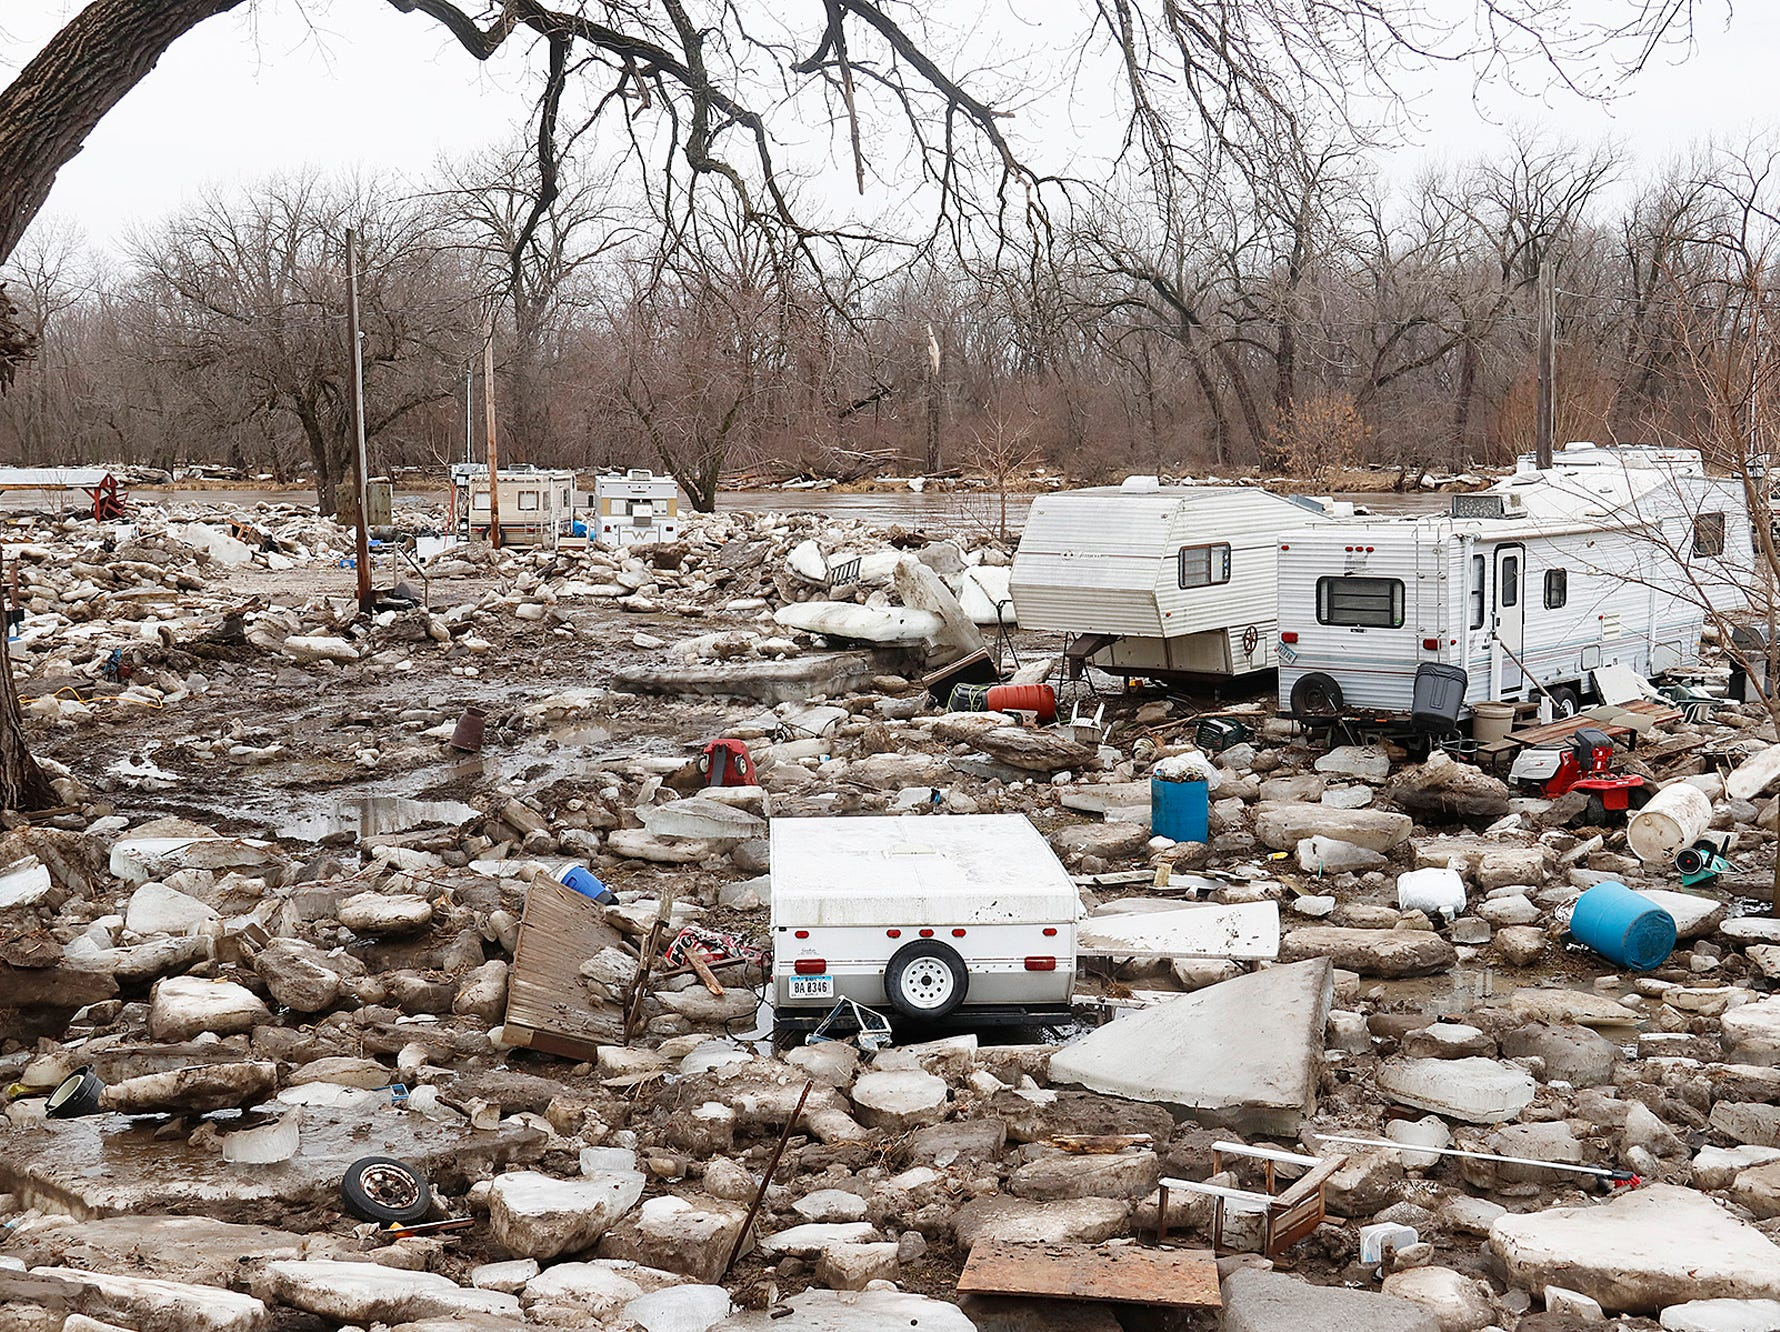 An ice jam built up on the Des Moines River at Ottumwa, Iowa, on Monday, March 12, 2019, and the damage was still evident a day later. The jam caused the river to flood a campground on the city's west side.